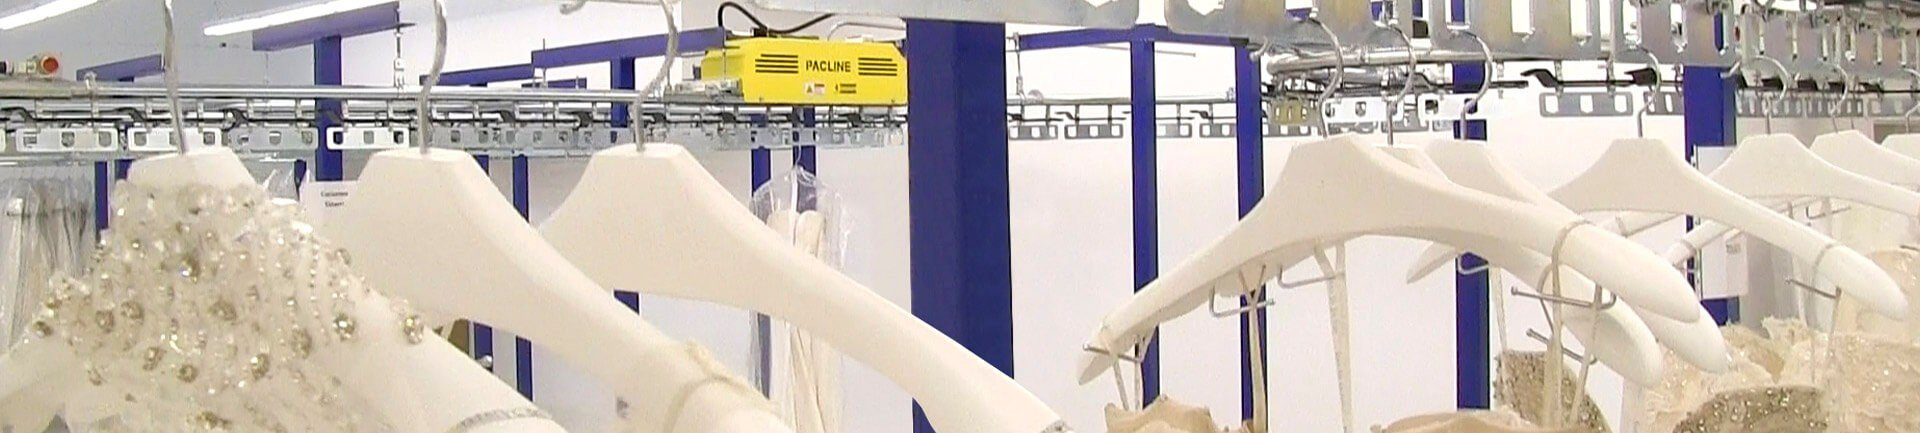 Garment handling conveyor for storage and retrieval of costumes, bridal gowns and other hanging garments.